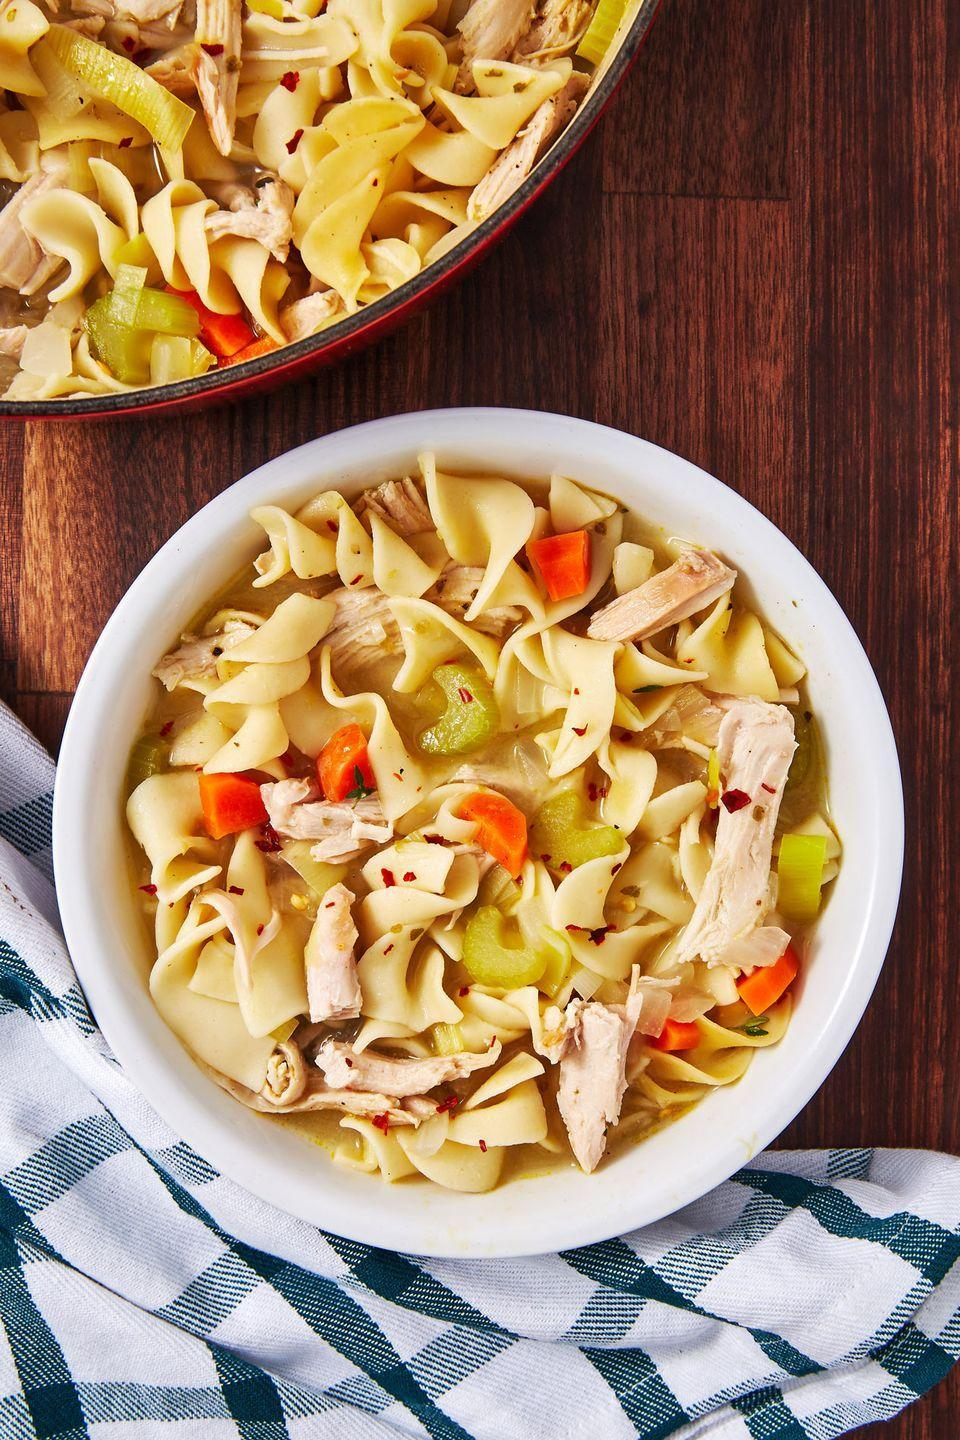 "<p>Step out of your chicken noodle comfort zone.</p><p>Get the recipe from <a href=""https://www.delish.com/cooking/recipe-ideas/a29089192/turkey-noodle-soup-recipe/"" rel=""nofollow noopener"" target=""_blank"" data-ylk=""slk:Delish"" class=""link rapid-noclick-resp"">Delish</a>.</p>"